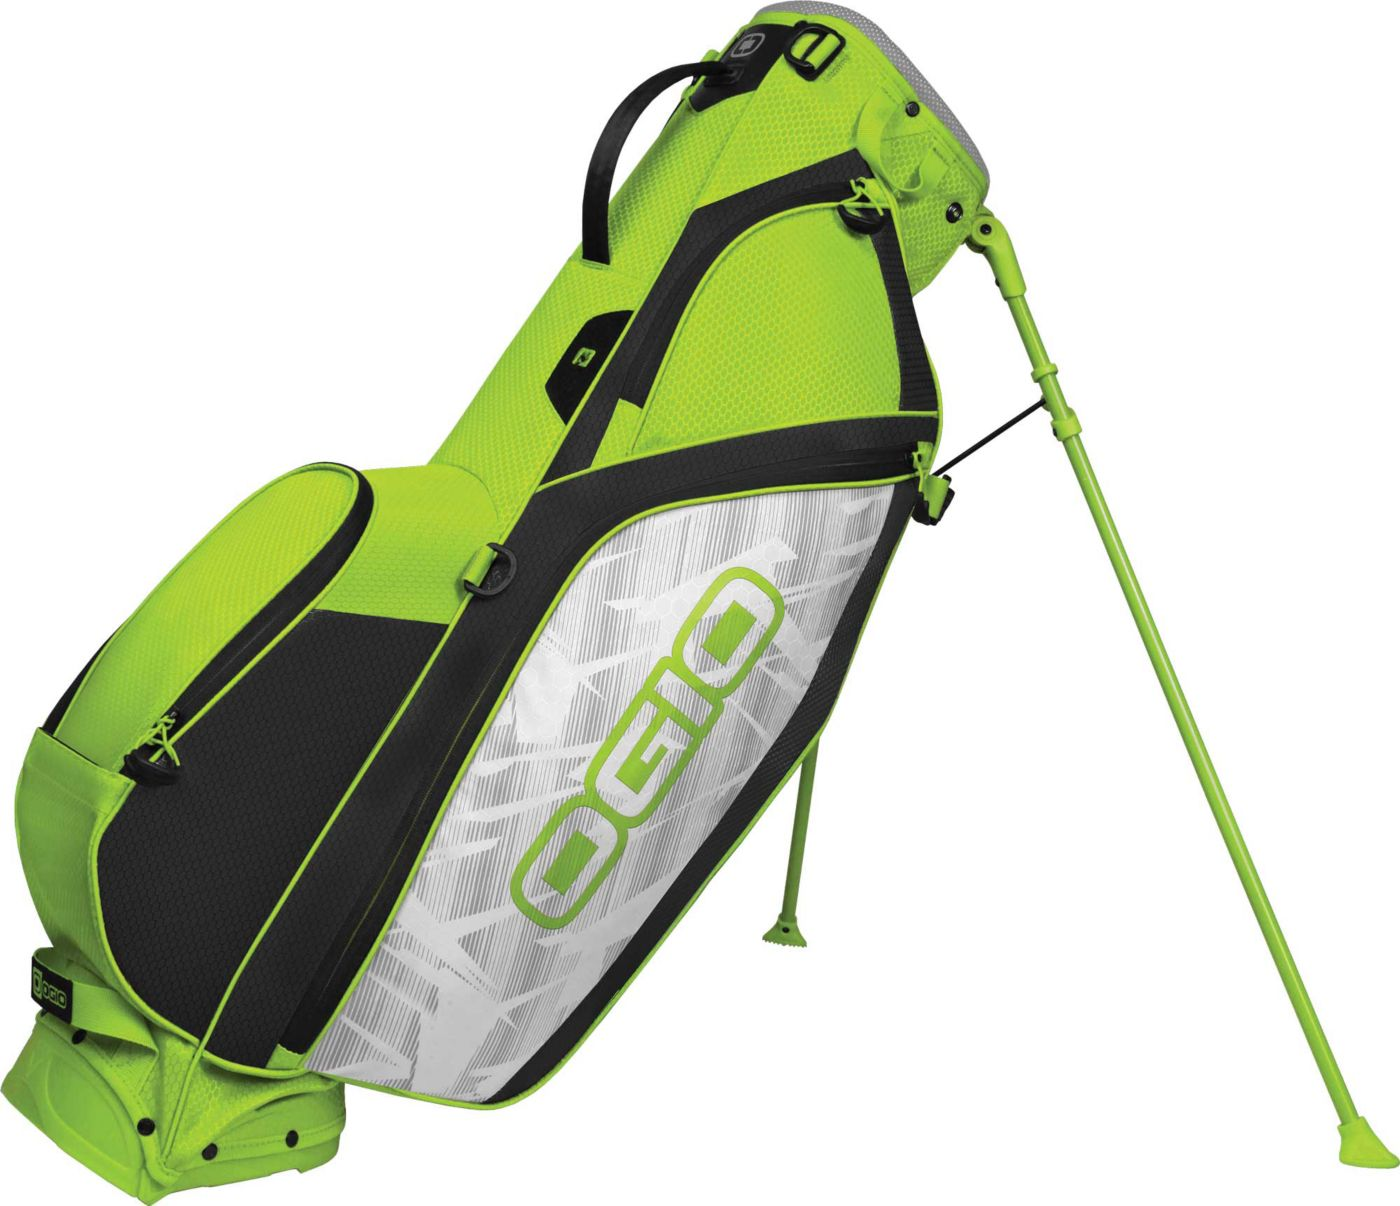 OGIO 2018 Cirrus MB Stand Golf Bag